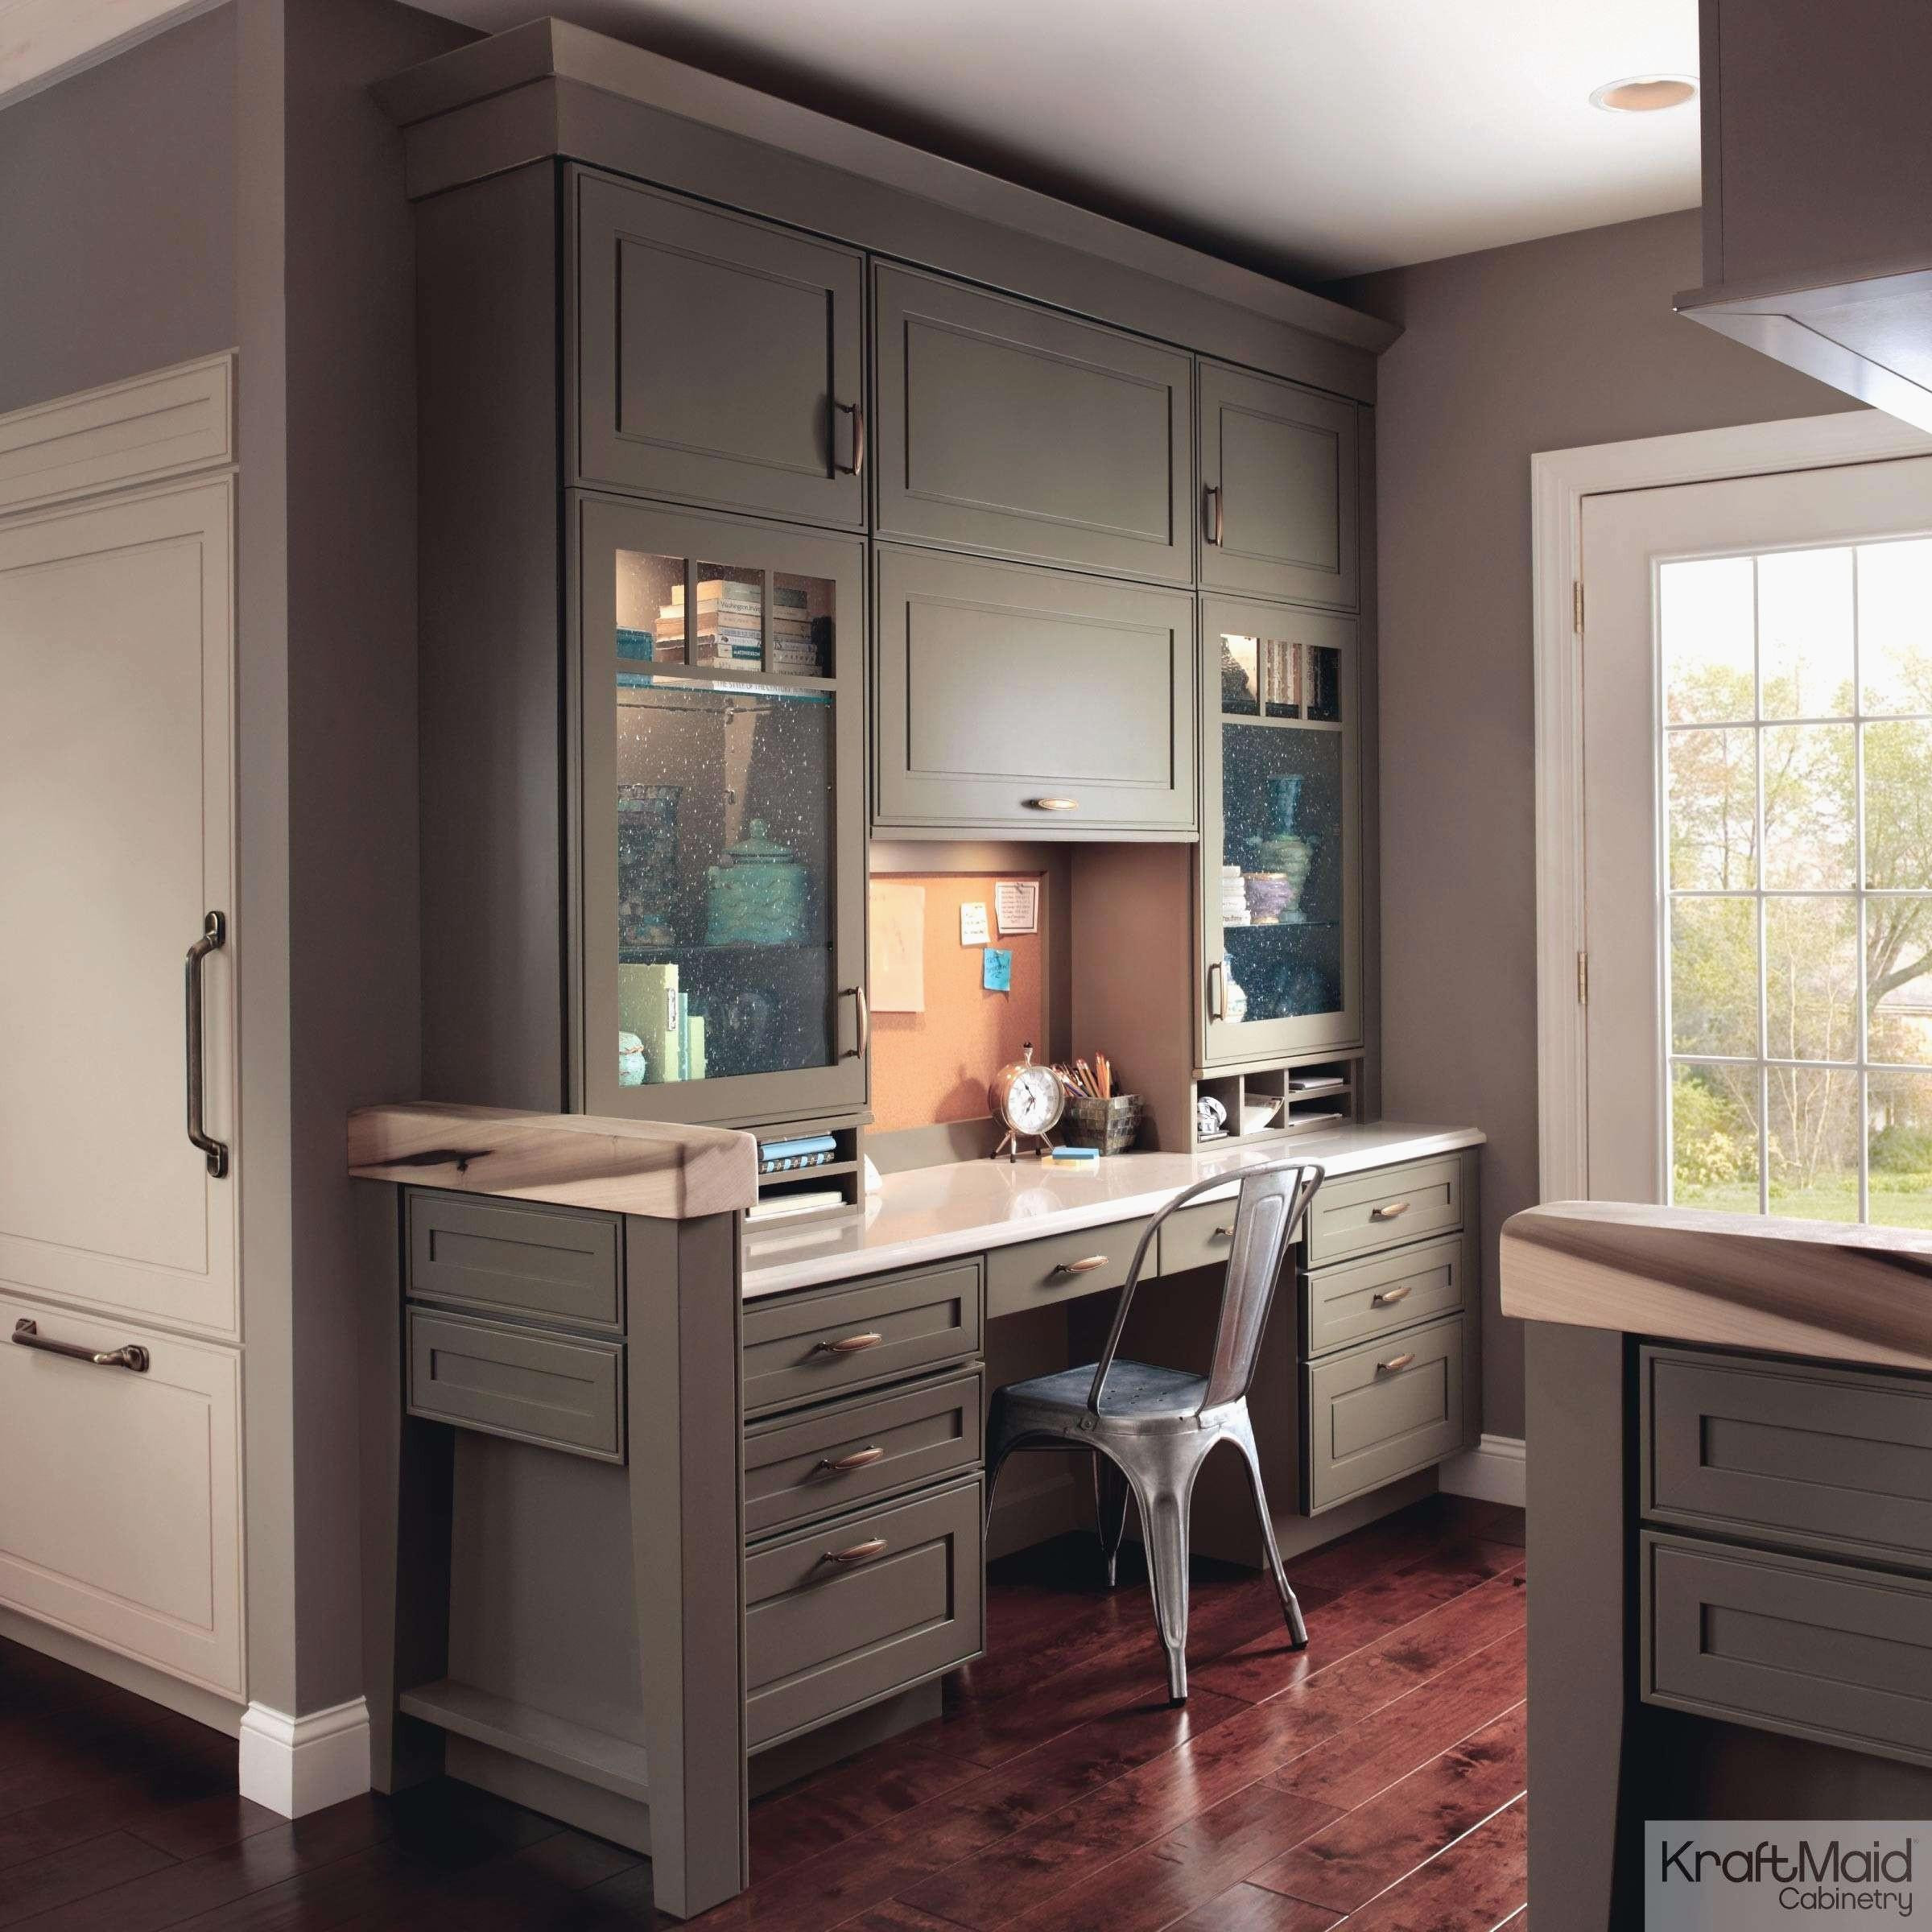 Where To Get Used Kitchen Cabinets: 17 Awesome Hardwood Floor Refinishing Michigan